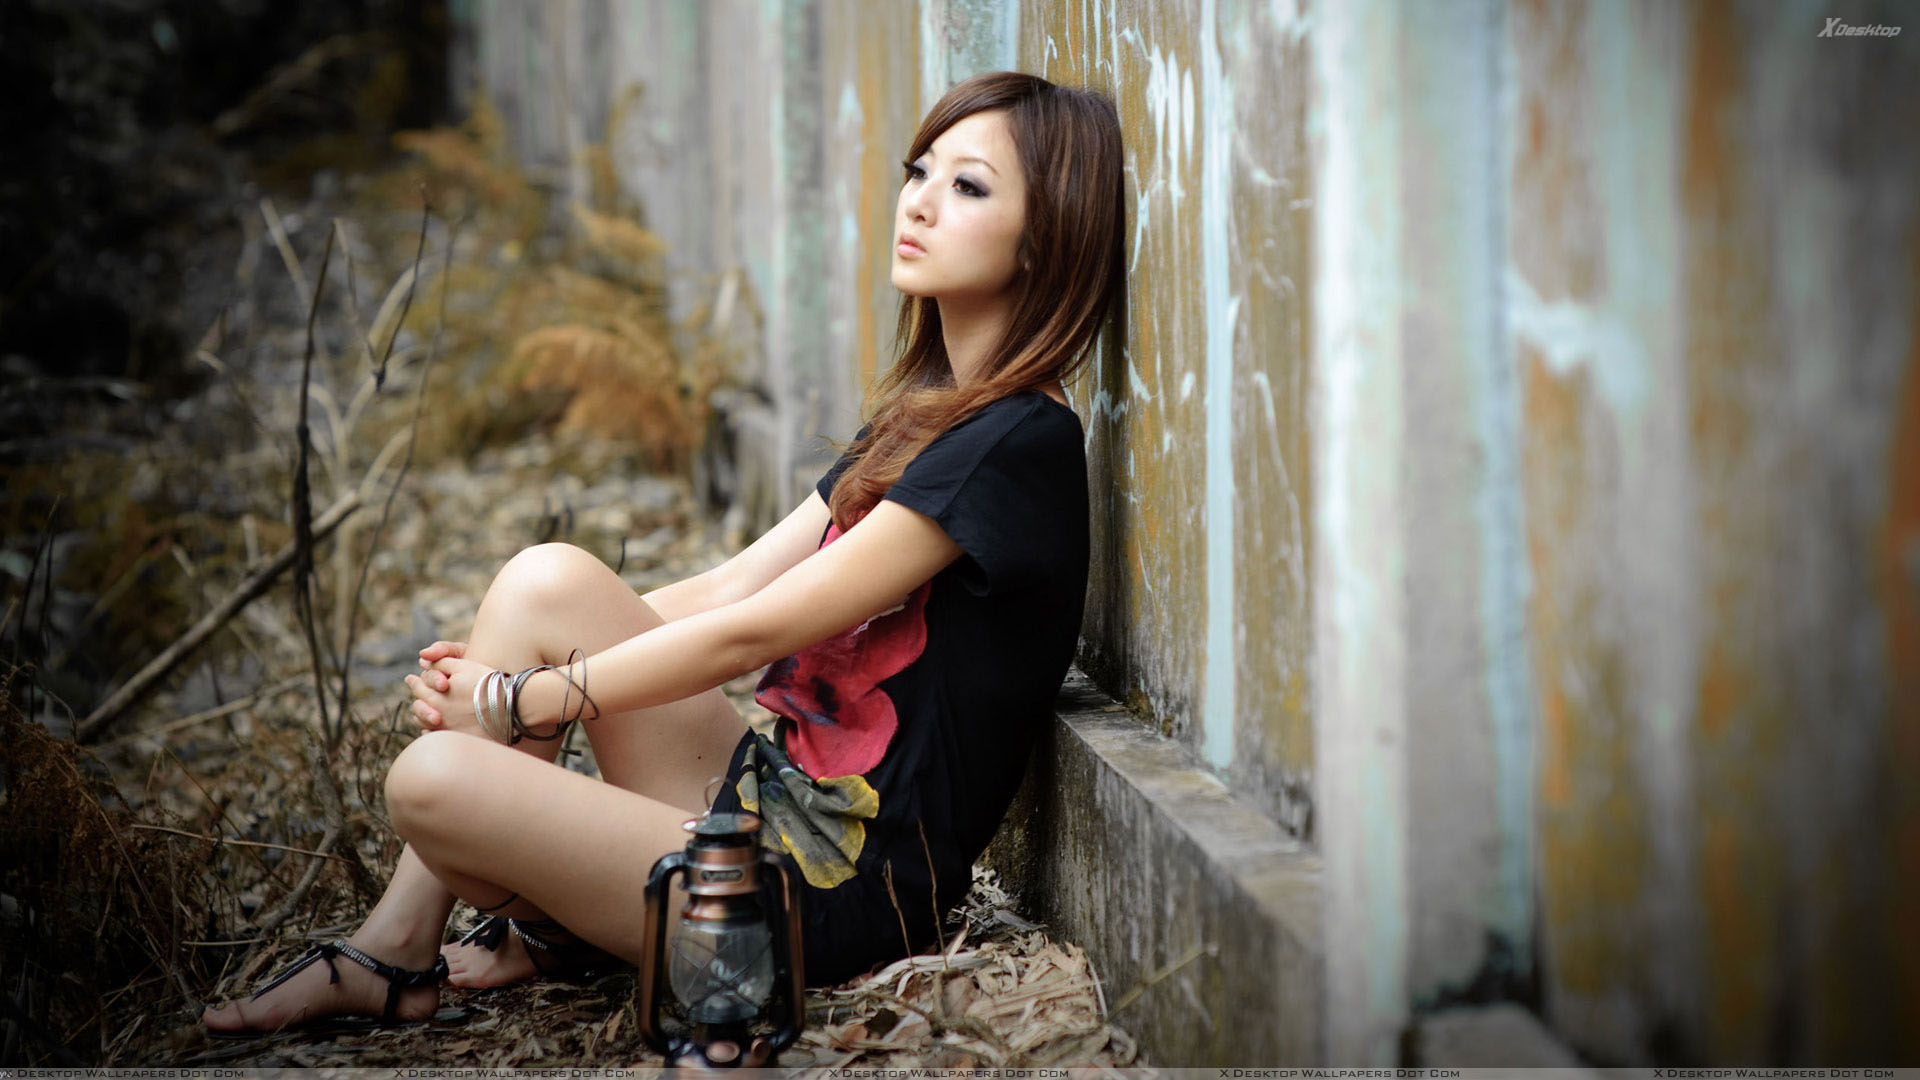 Sad Love Wallpaper Of Girl : Girl Lost In Love ? Sitting Pose in Black Top Wallpaper